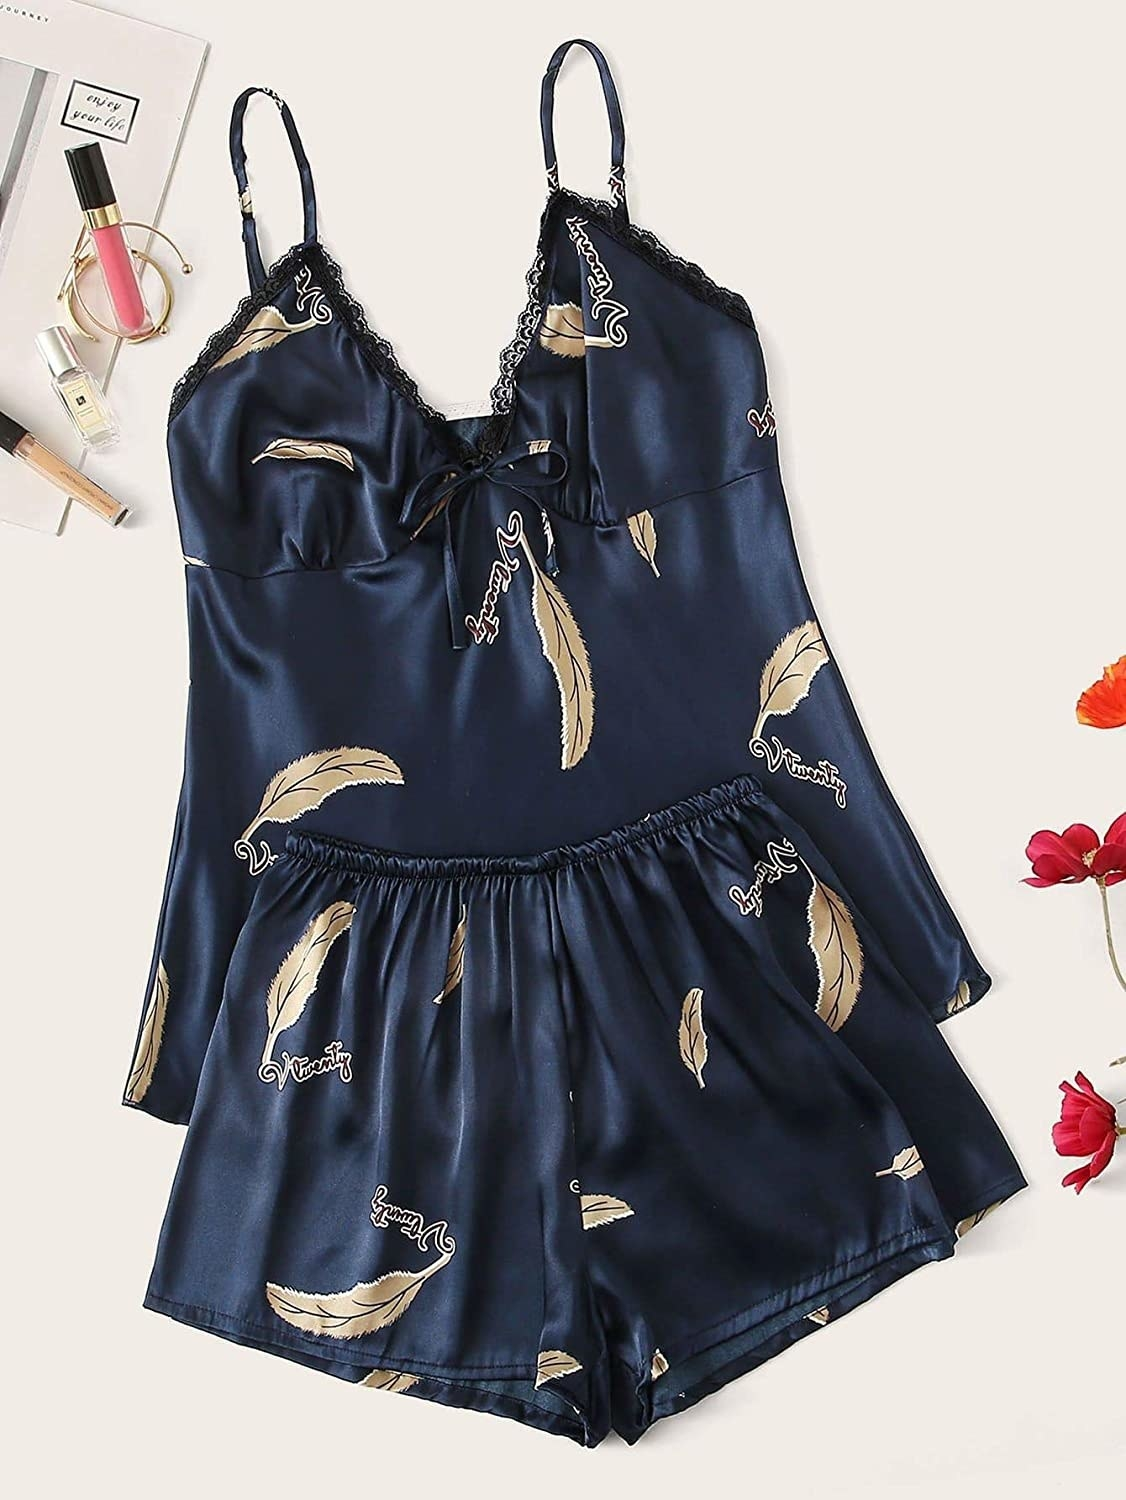 the blue satin set with feather design